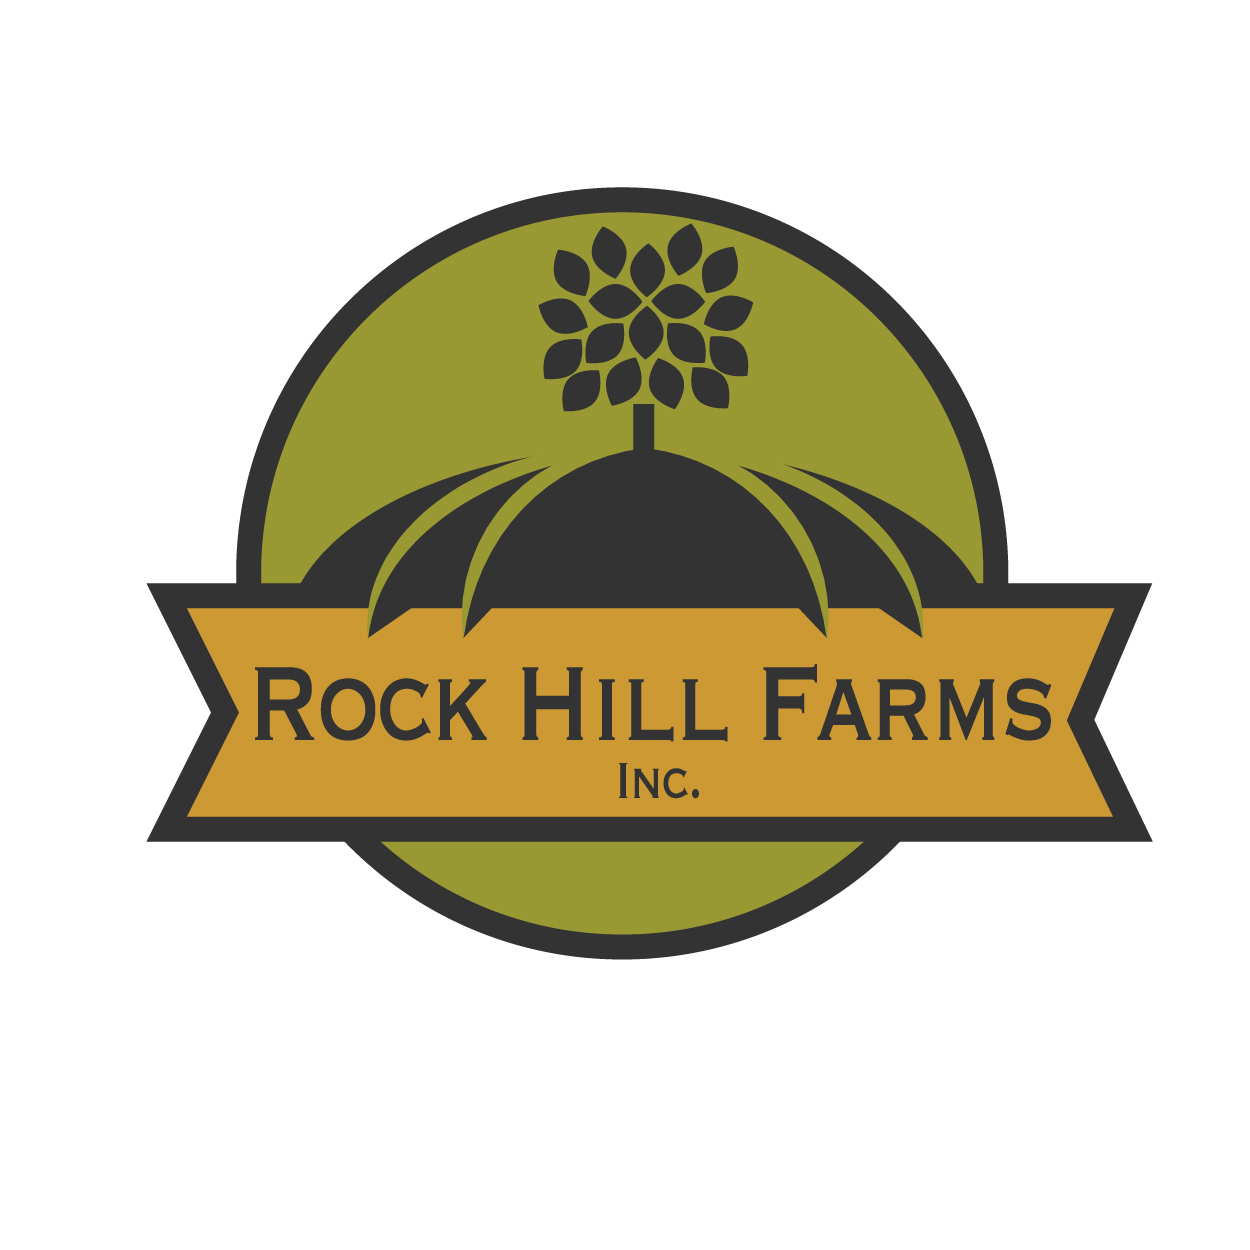 farm logo design for rock hill farms inc by thomasdesign design 7491842